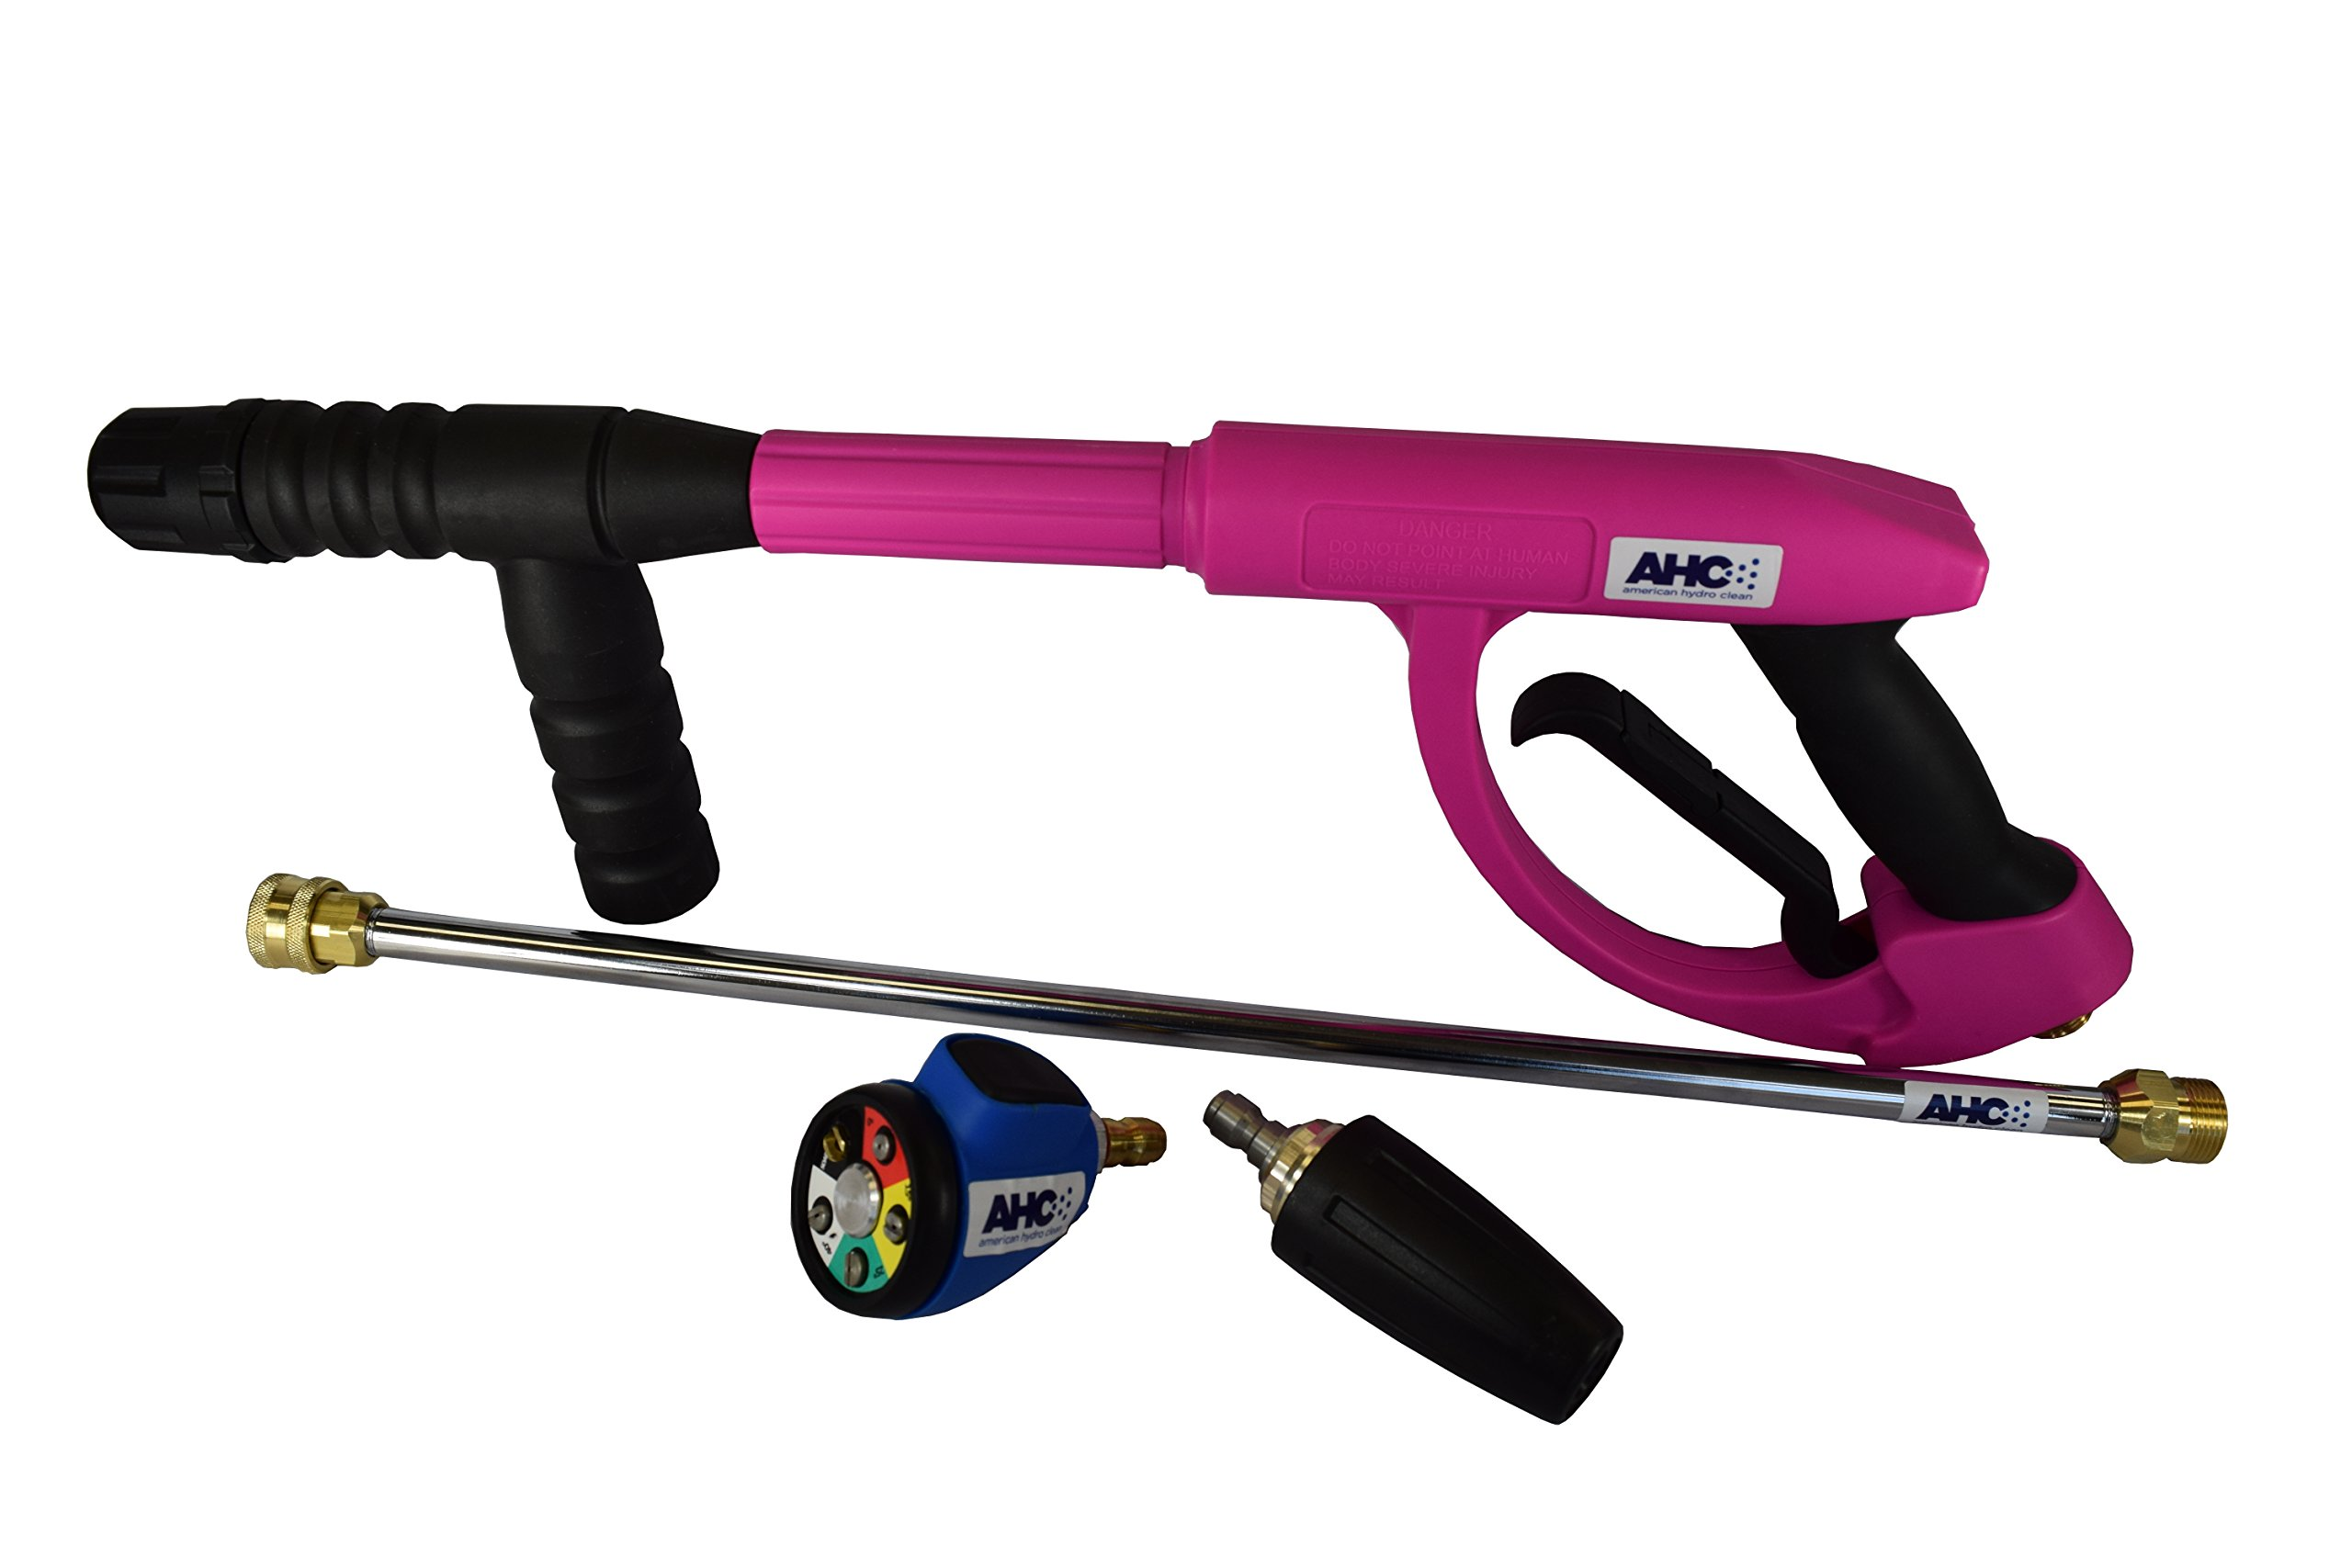 American Hydro Clean AHCGUNKIT8 M22 Ergo Pressure Washer Gun 3600PSI, 20'' Lance, Multi-tip and Turbo Nozzle, Pink (Pack of 4)